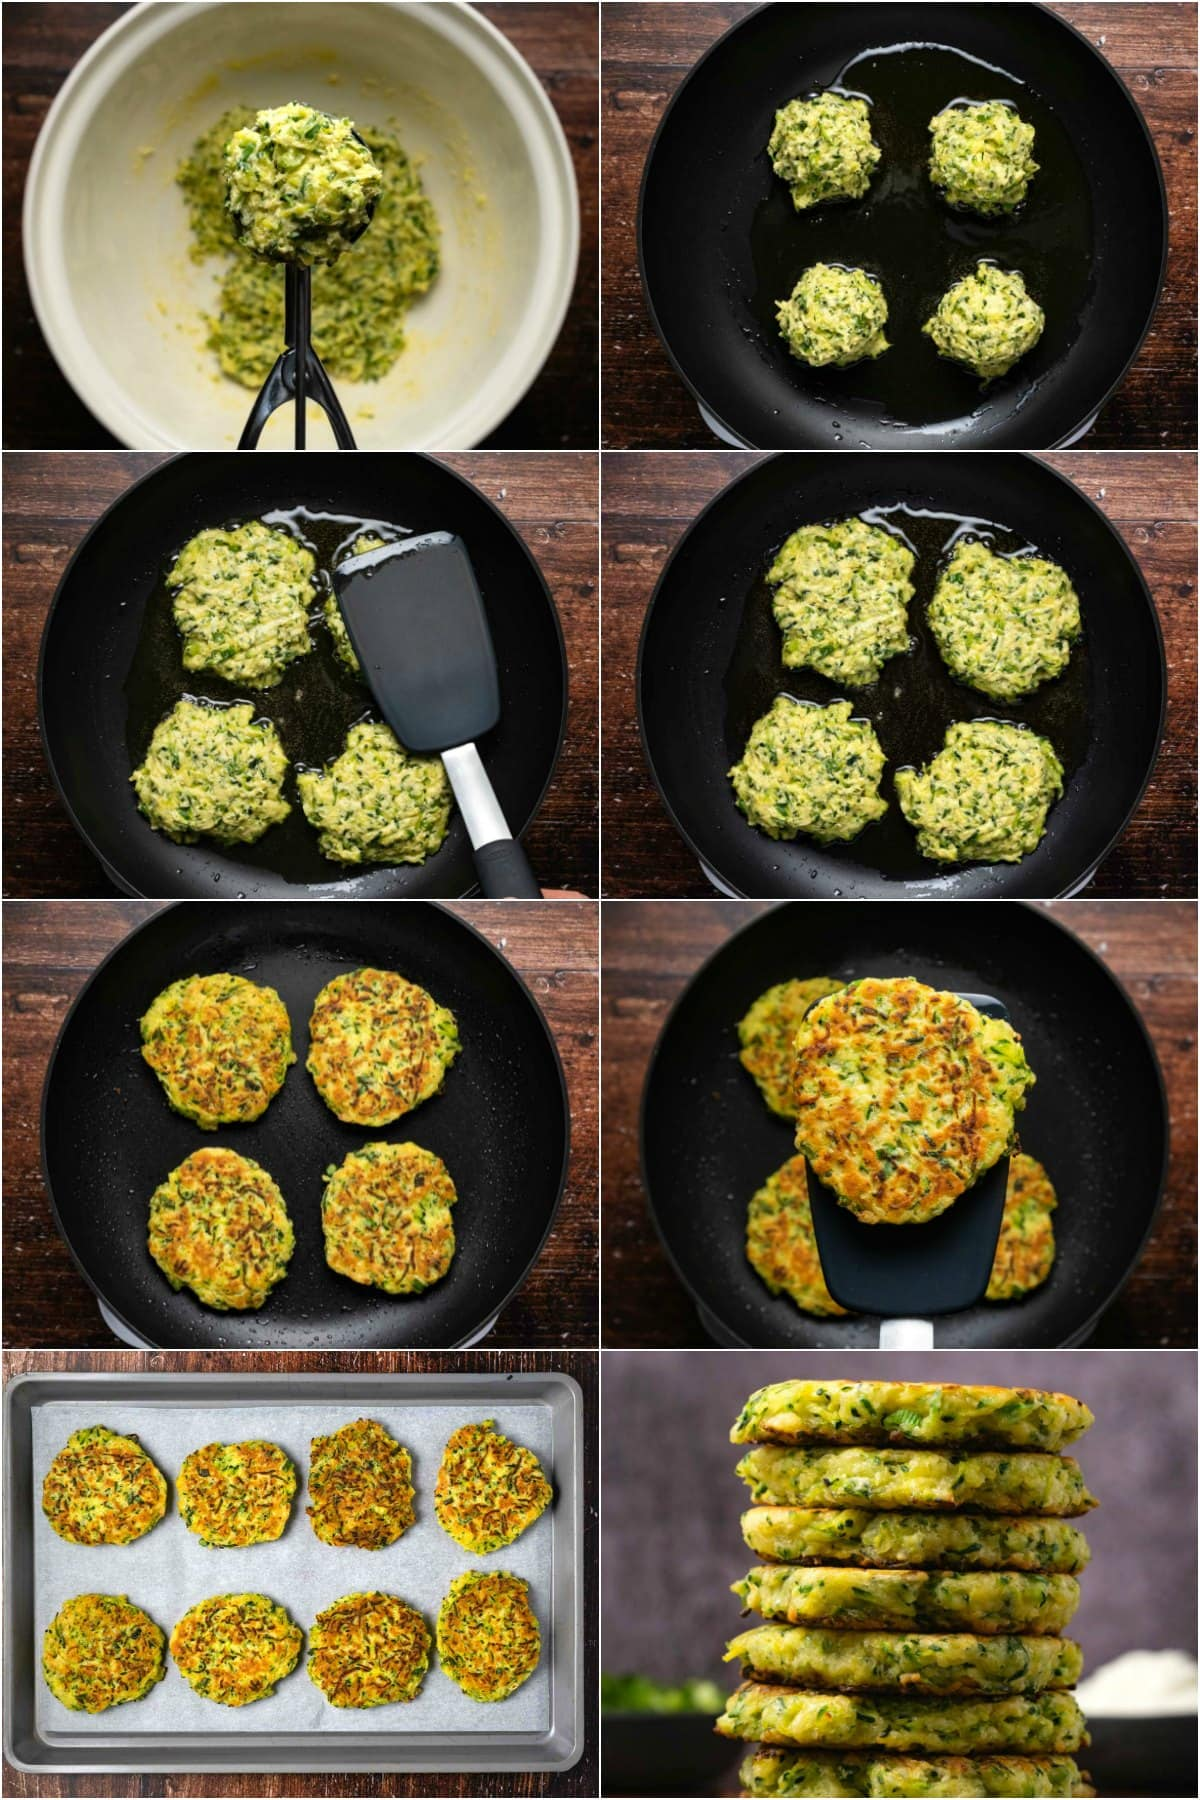 Step by step process photo collage of making zucchini fritters.